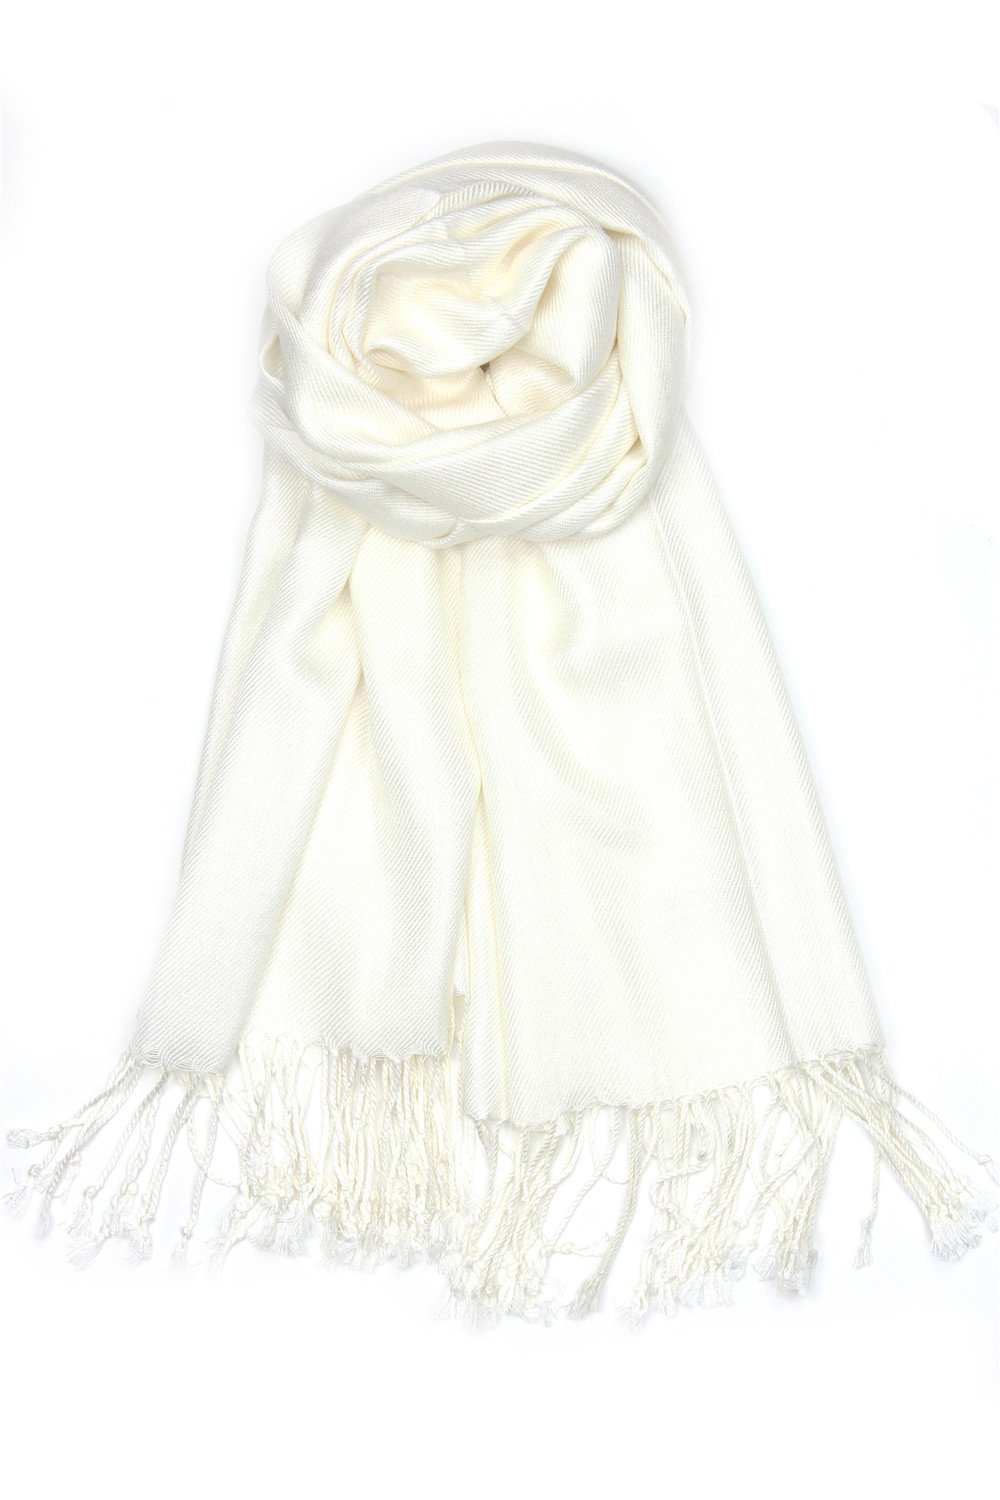 Achillea Large Soft Silky Pashmina Shawl Wrap Scarf in Solid Colors (Ivory) by Achillea